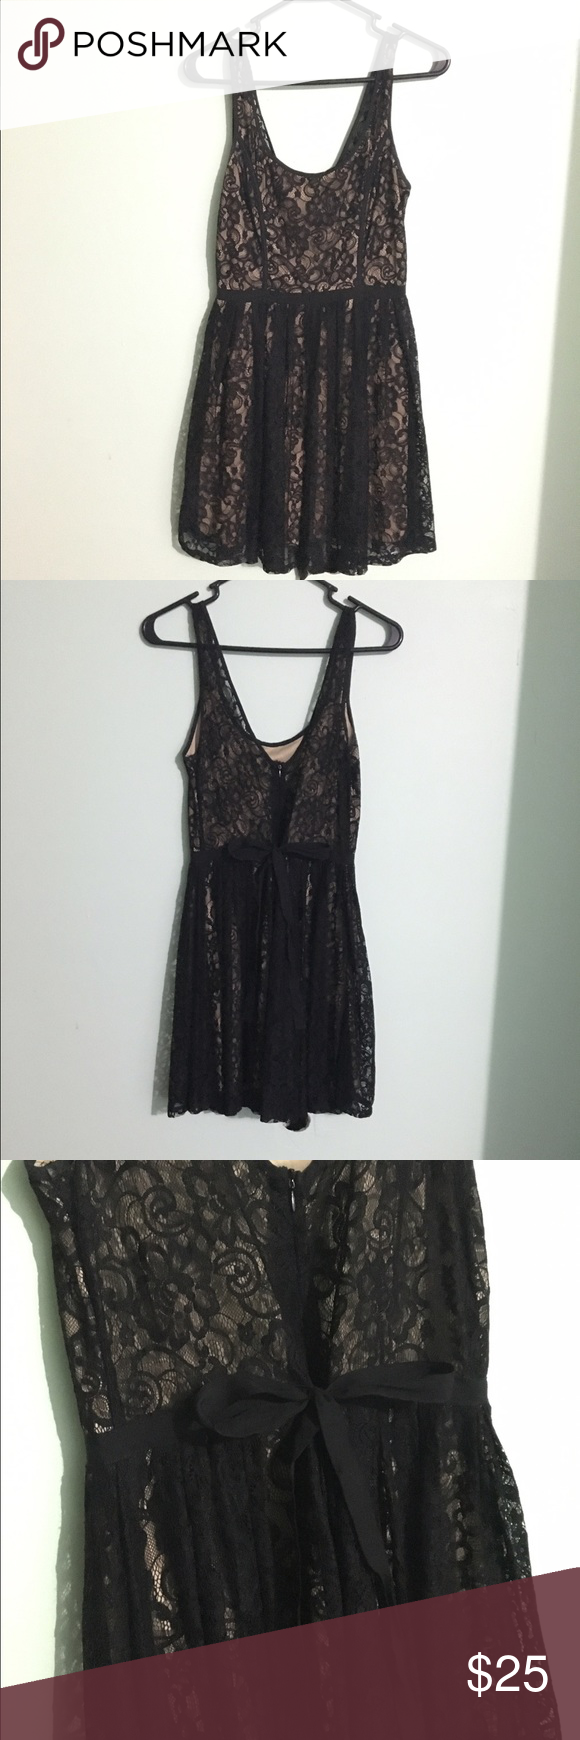 Kali black and nude lace dress in perfect condition fully lined